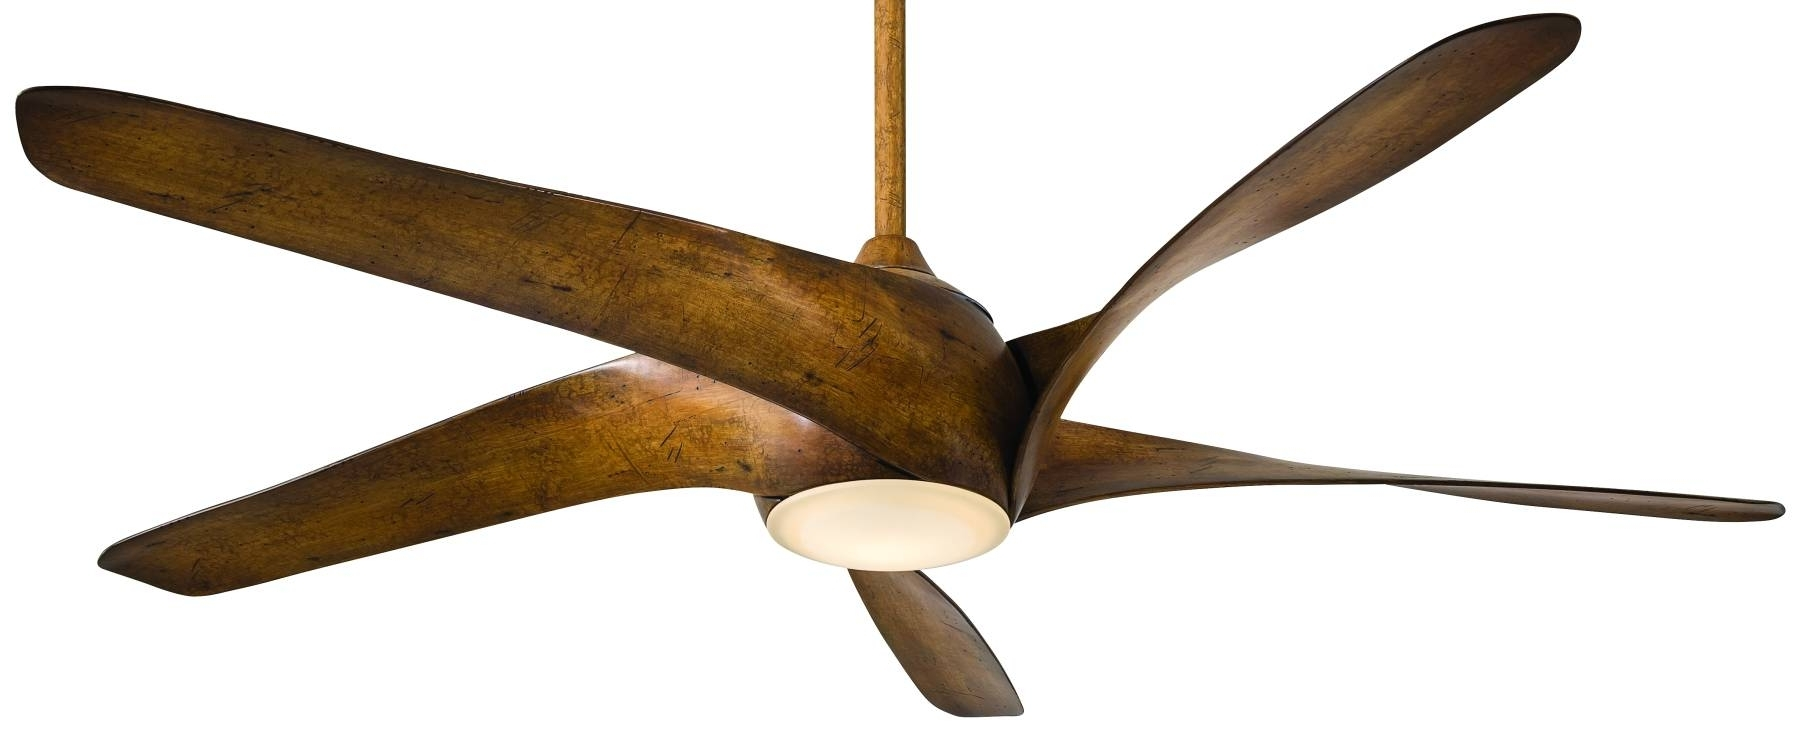 Industrial Outdoor Ceiling Fans With Light Pertaining To Most Popular Ceiling Fan: Inspiring Large Ceiling Fans For Home 96 Inch Ceiling (View 20 of 20)